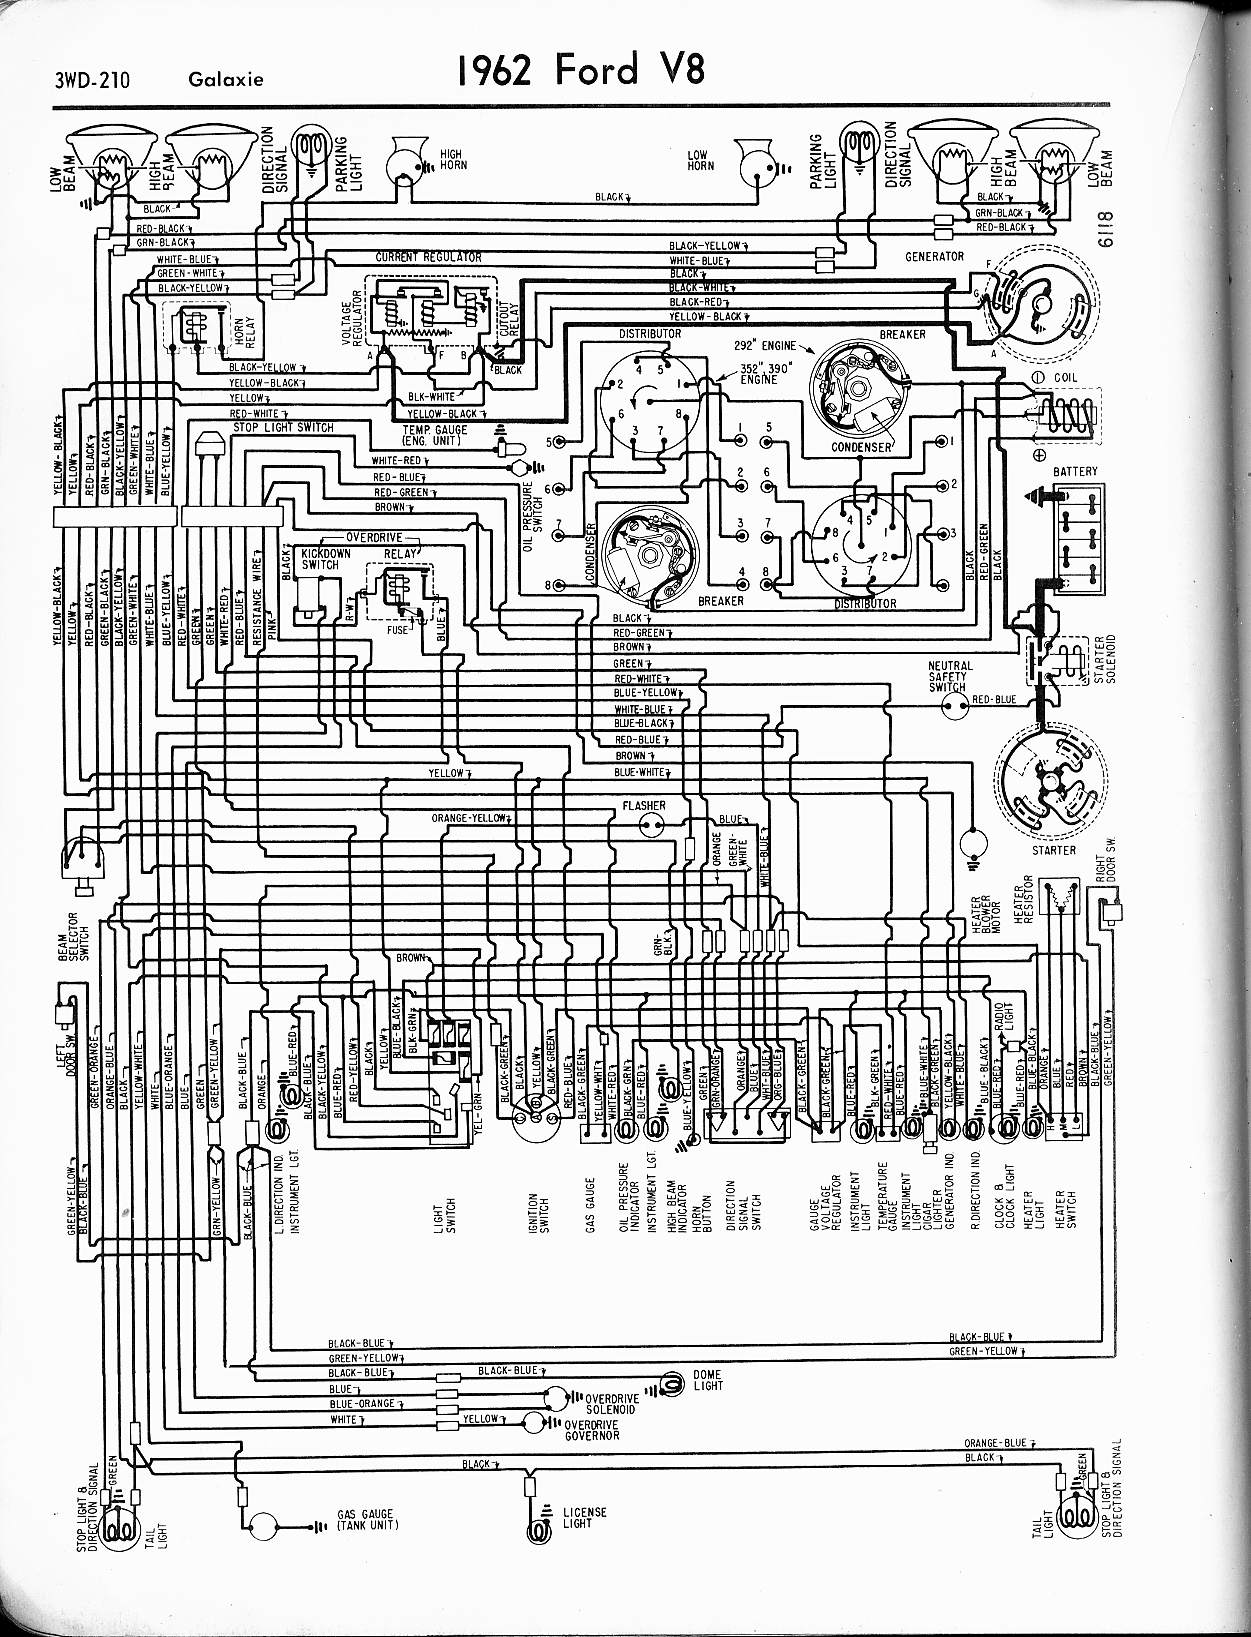 hight resolution of 1962 falcon fuse box wiring diagram for you ford f650 fuse box diagram 1962 ford fuse box diagram